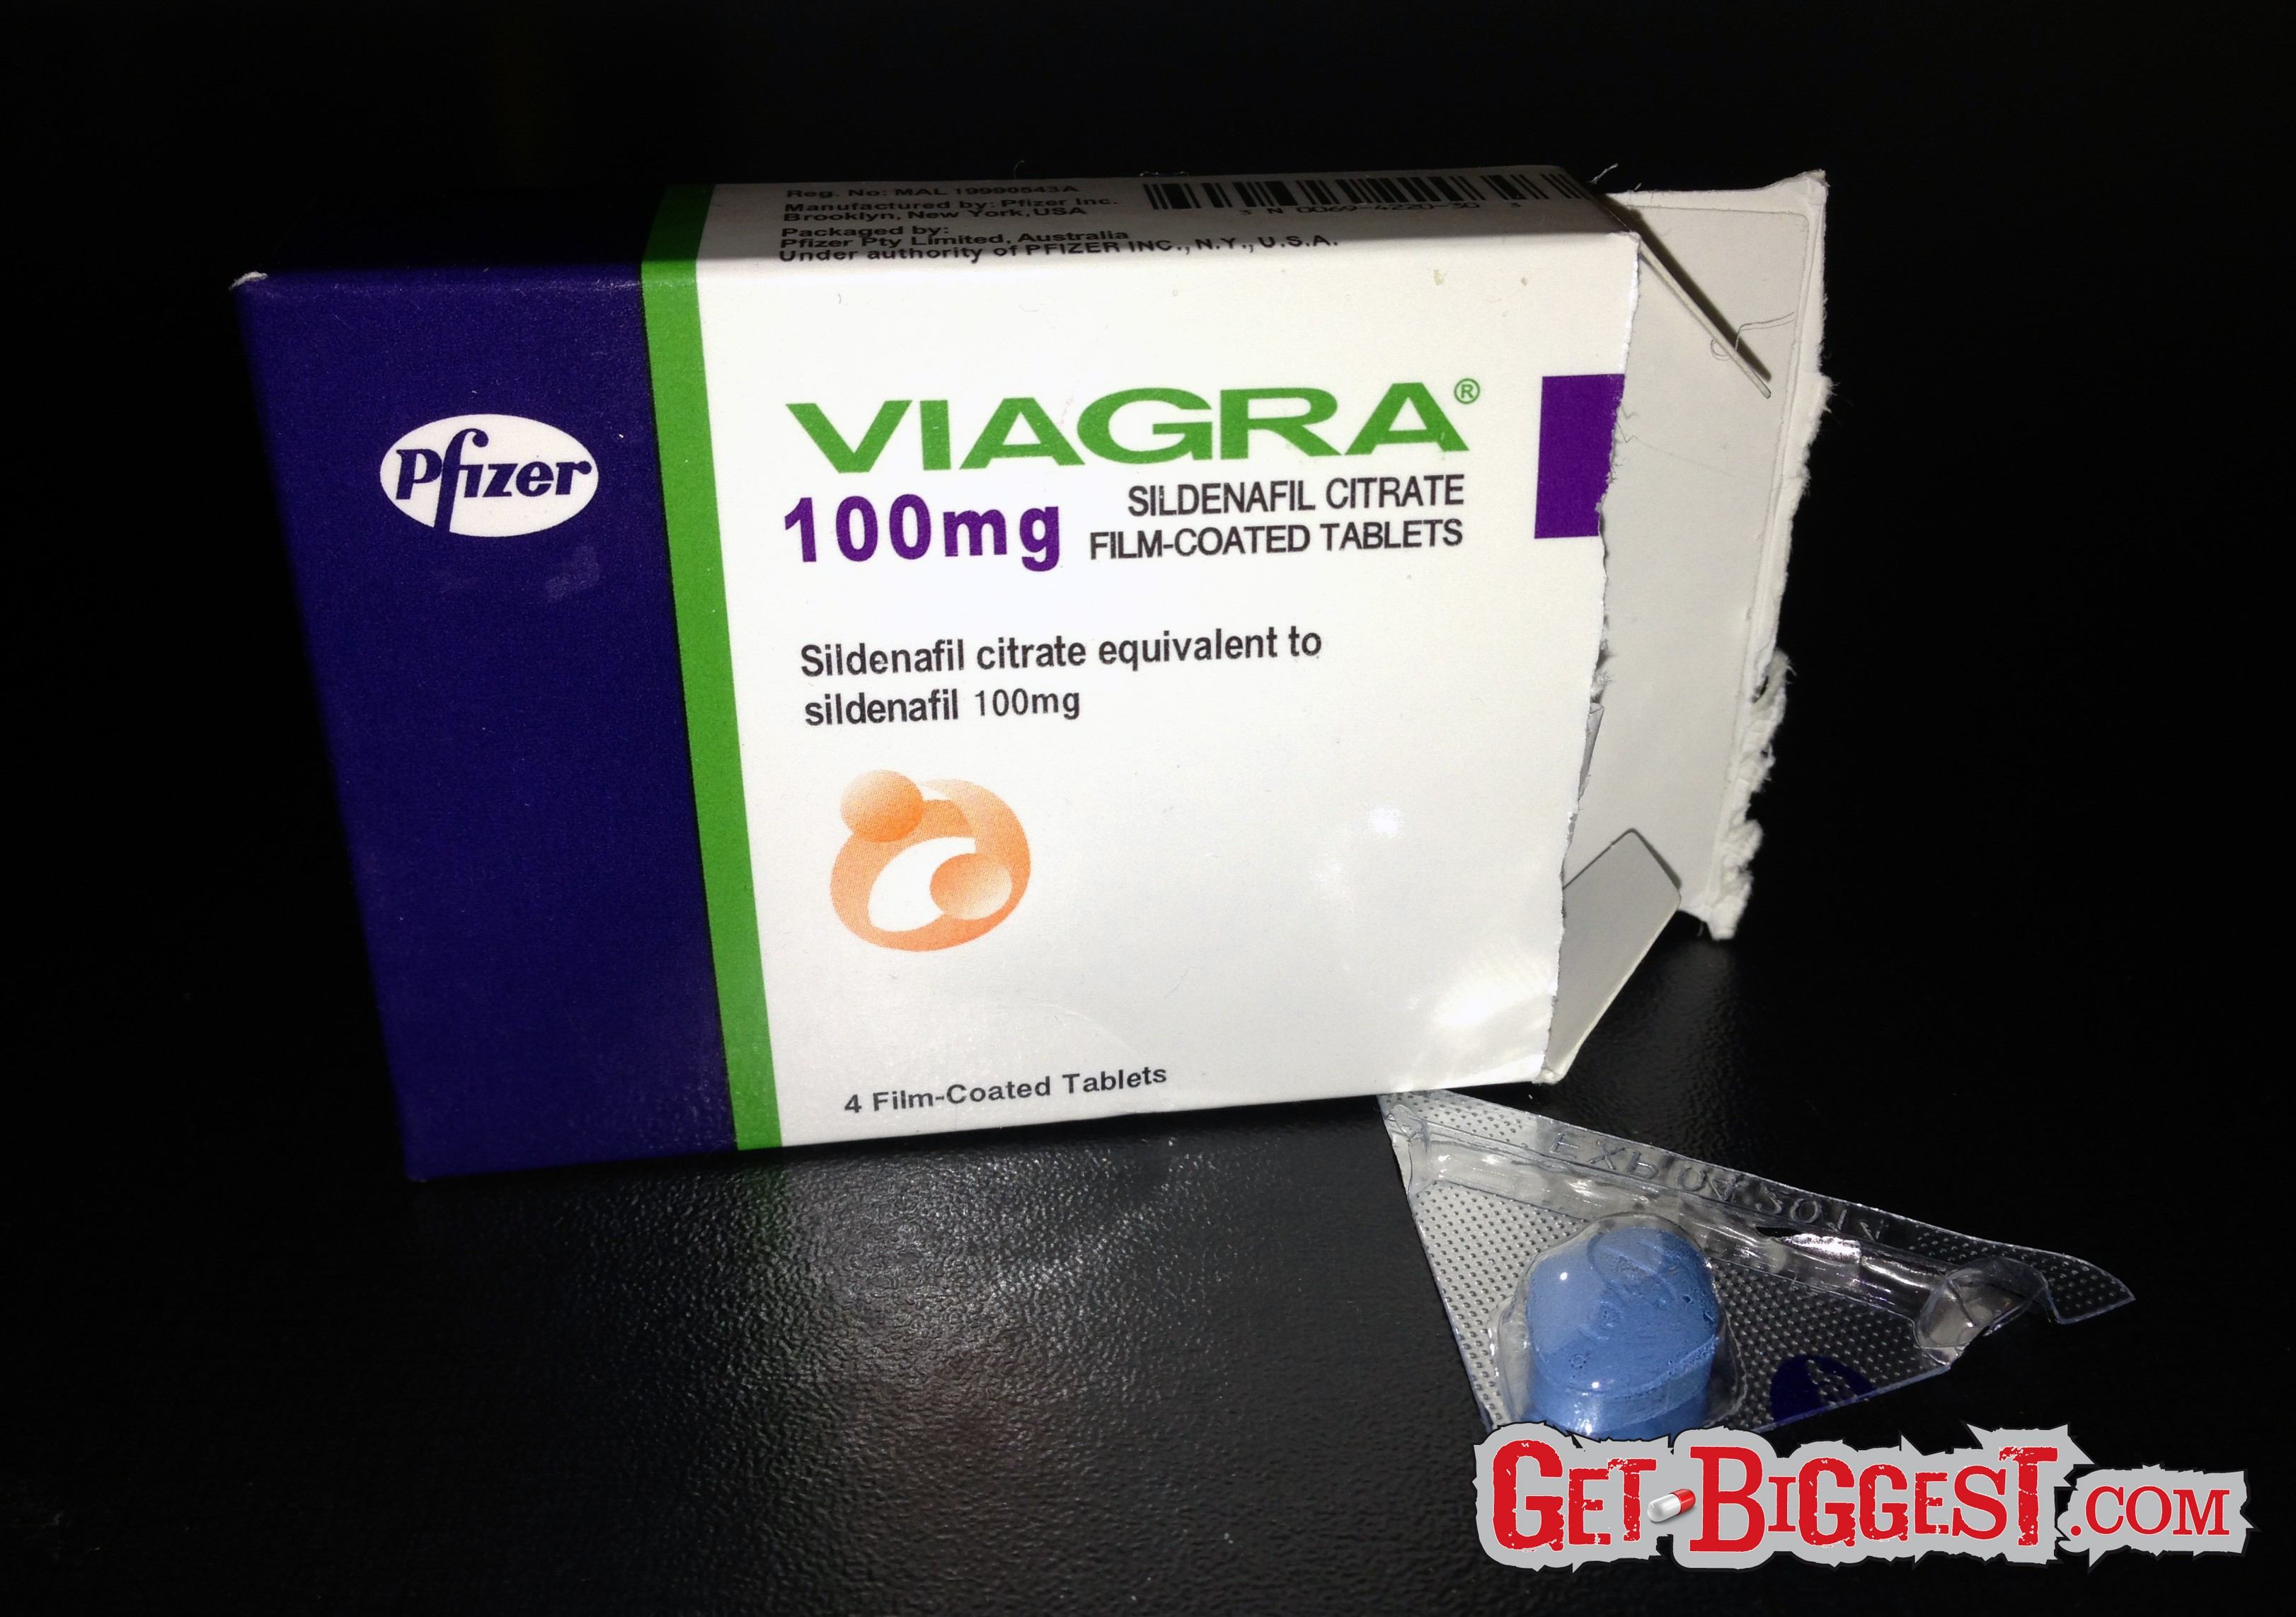 Where to get viagra